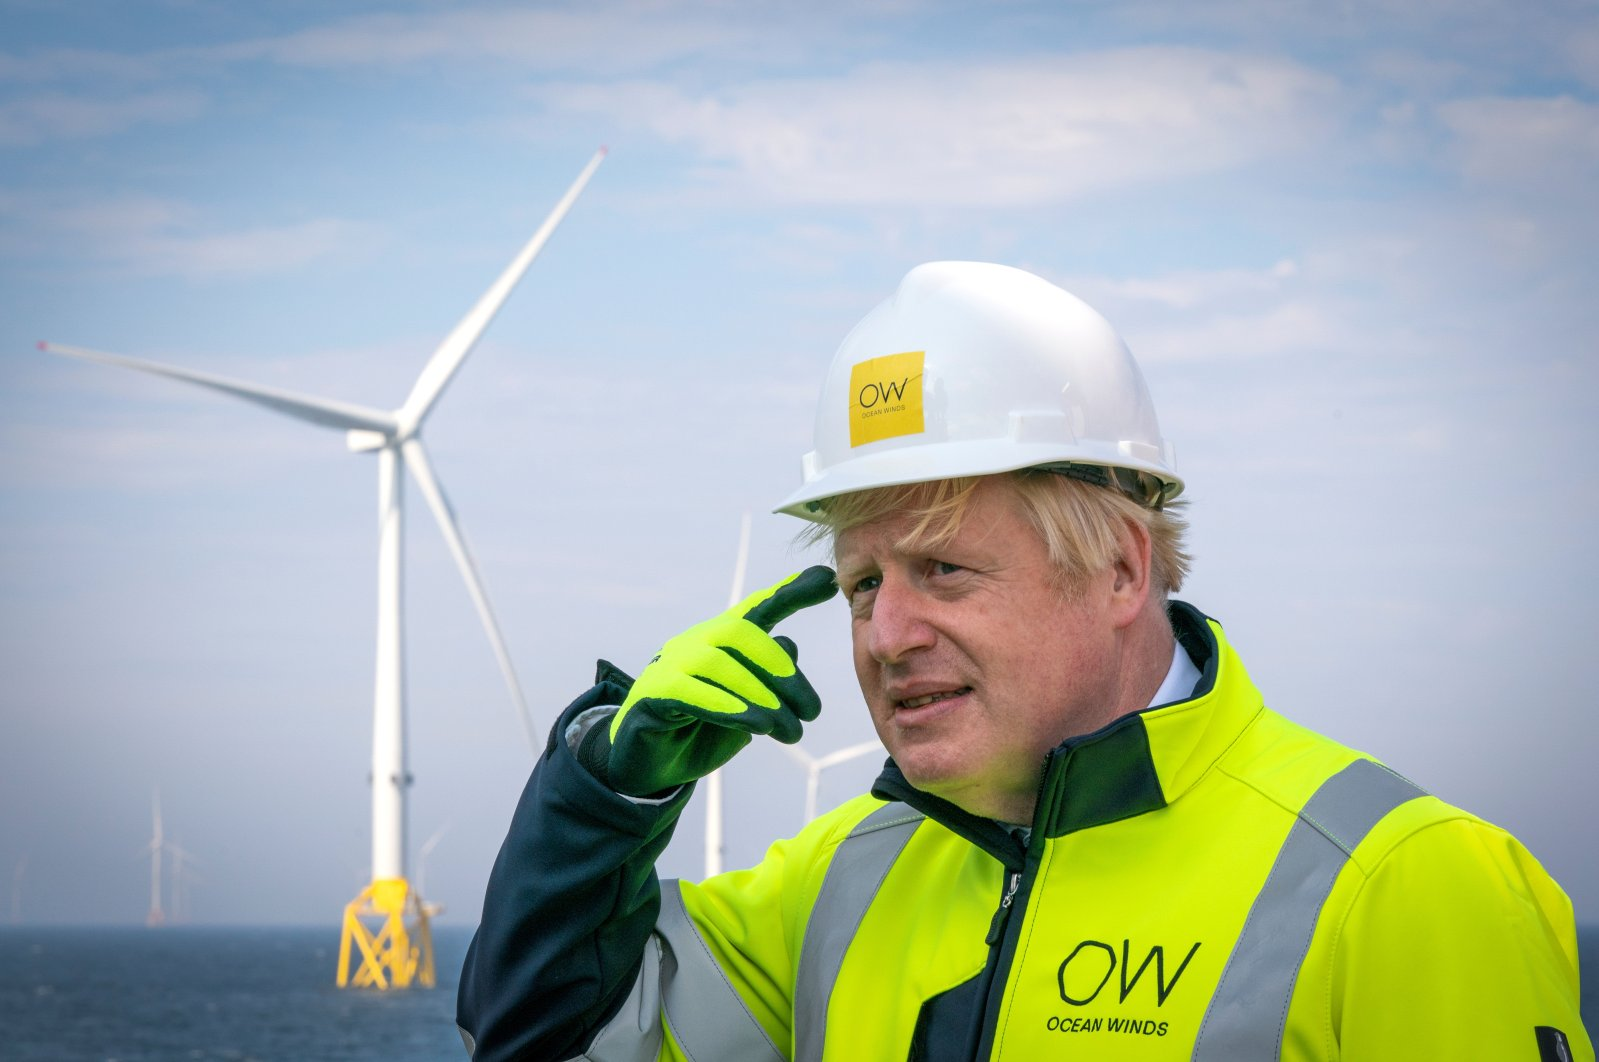 British Prime Minister Boris Johnson gestures onboard the Esvagt Alba during a visit to the Moray Offshore Windfarm East, off the Scottish Aberdeenshire coast, Aug. 5, 2021. (Reuters Photo)